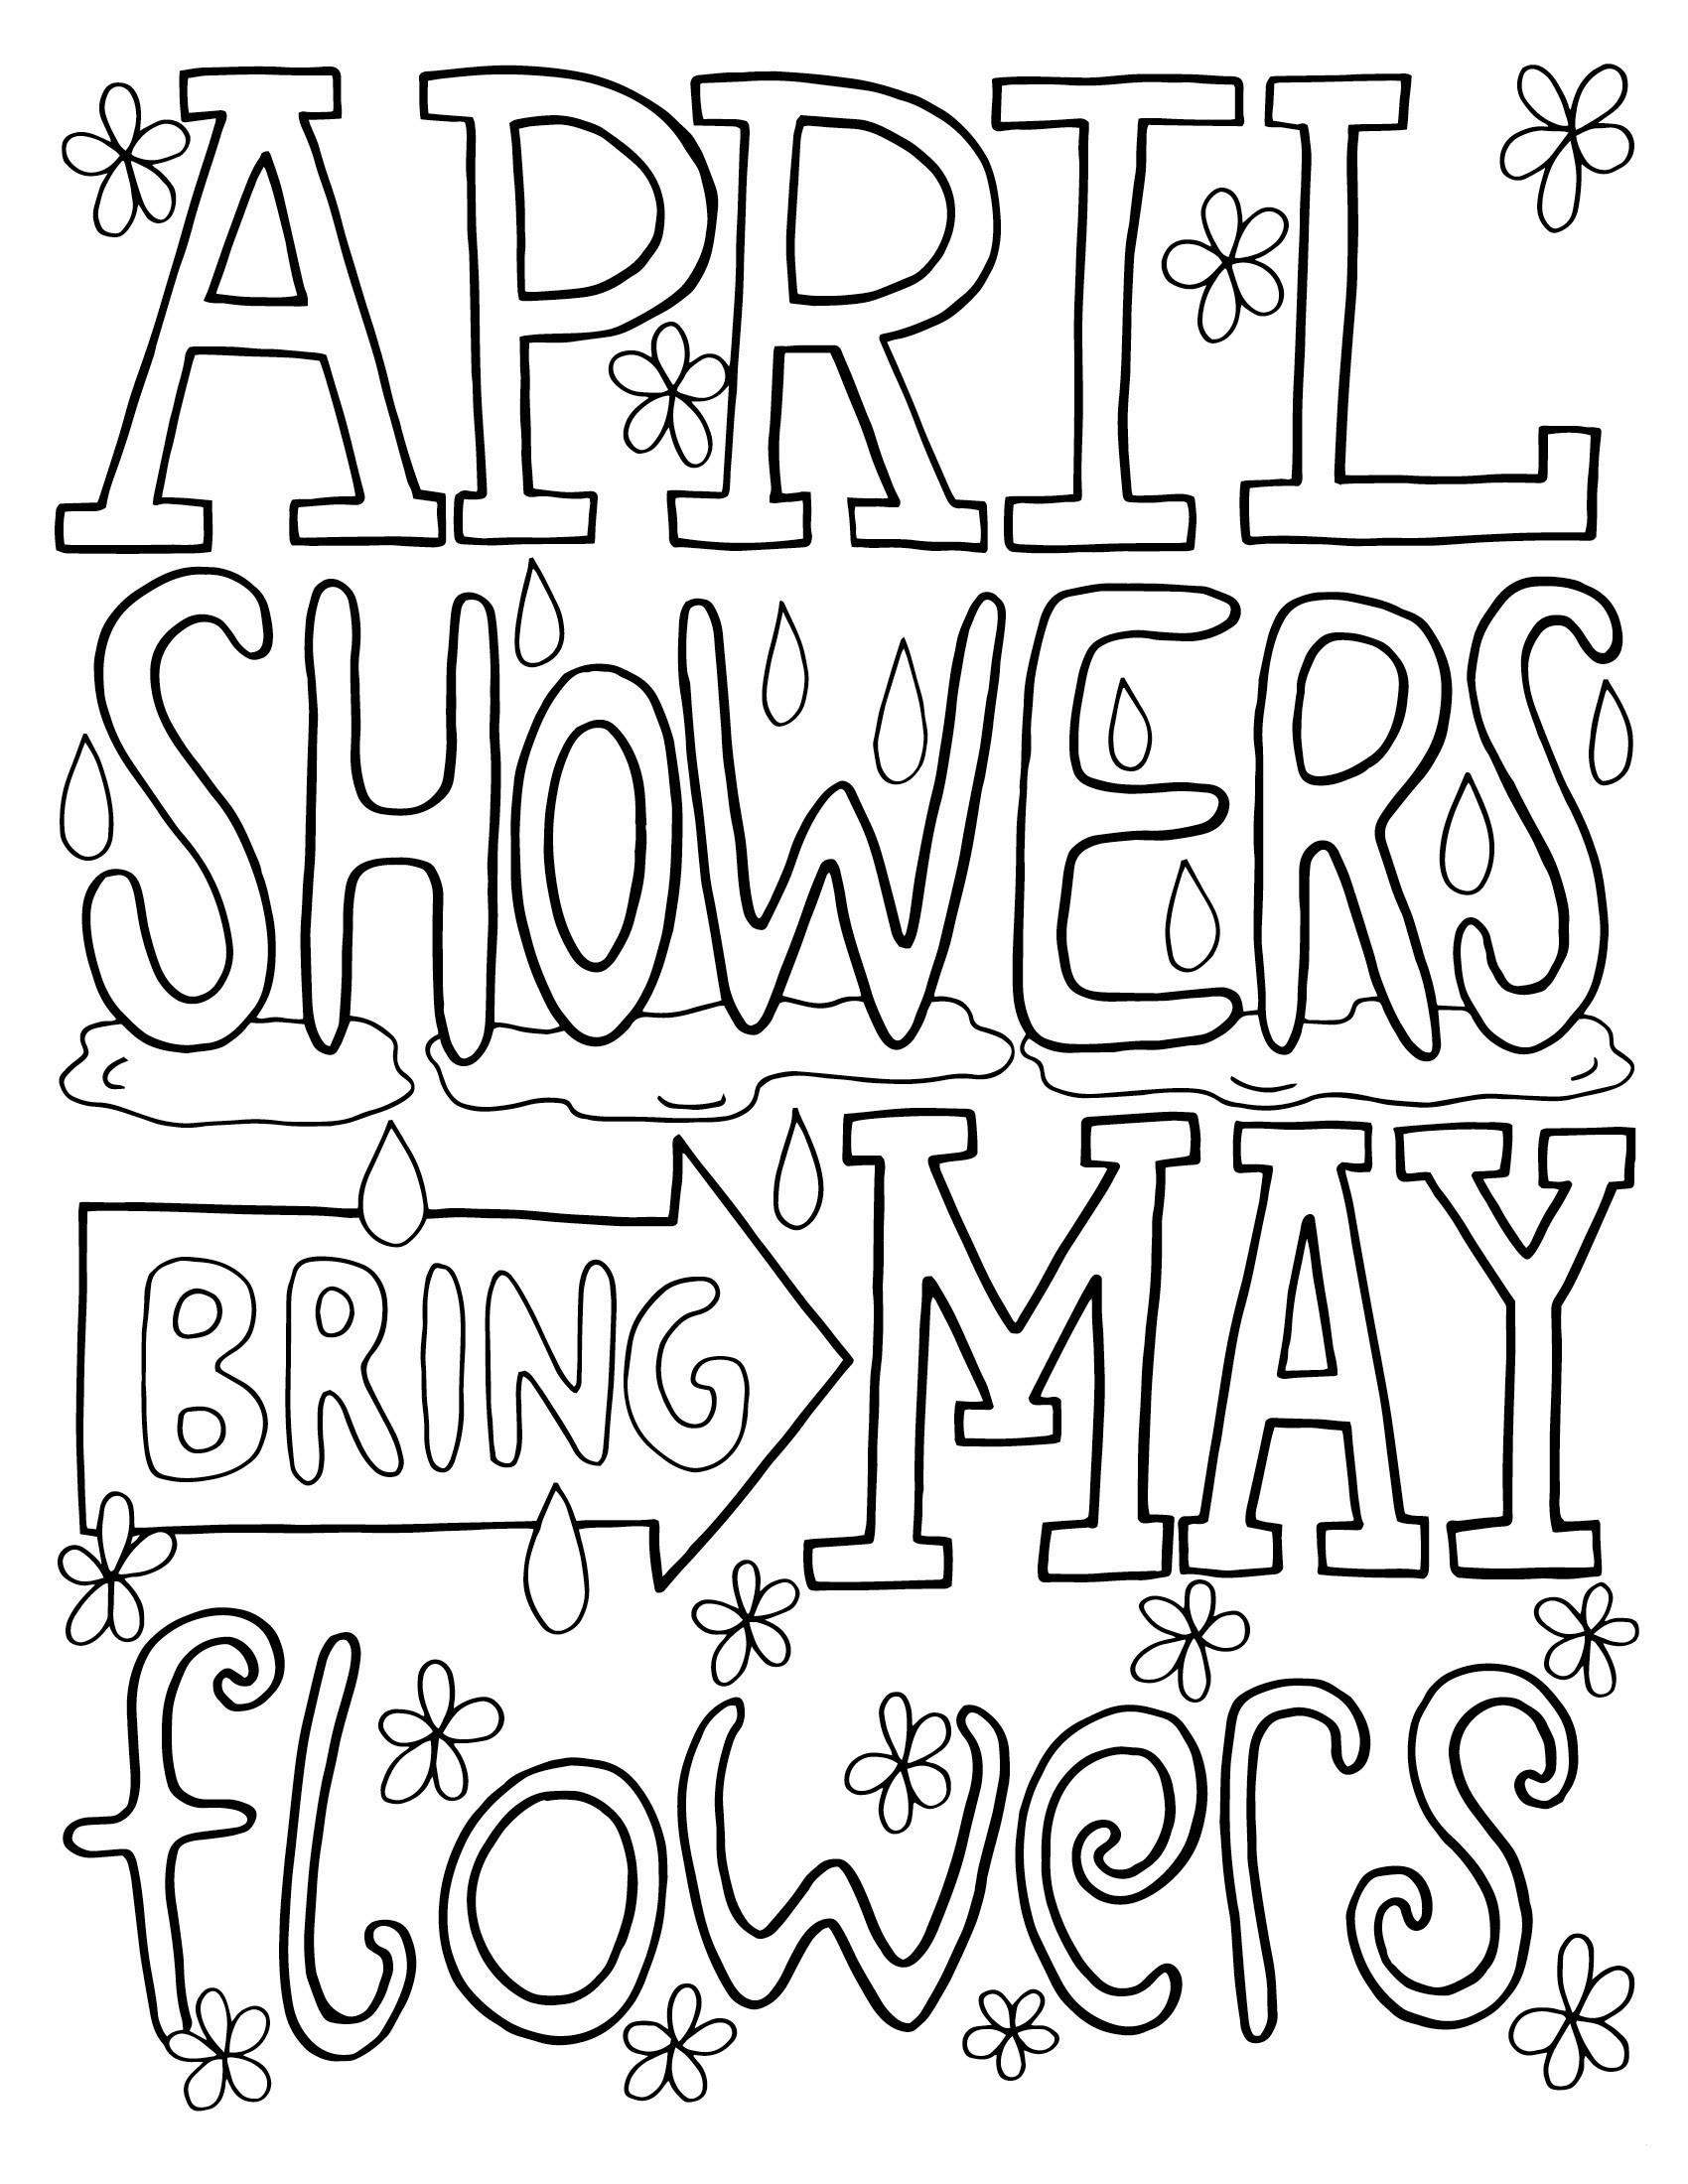 BlueBonkers : April Fools Day Coloring pages - April Fool Coloring ... | 2200x1700